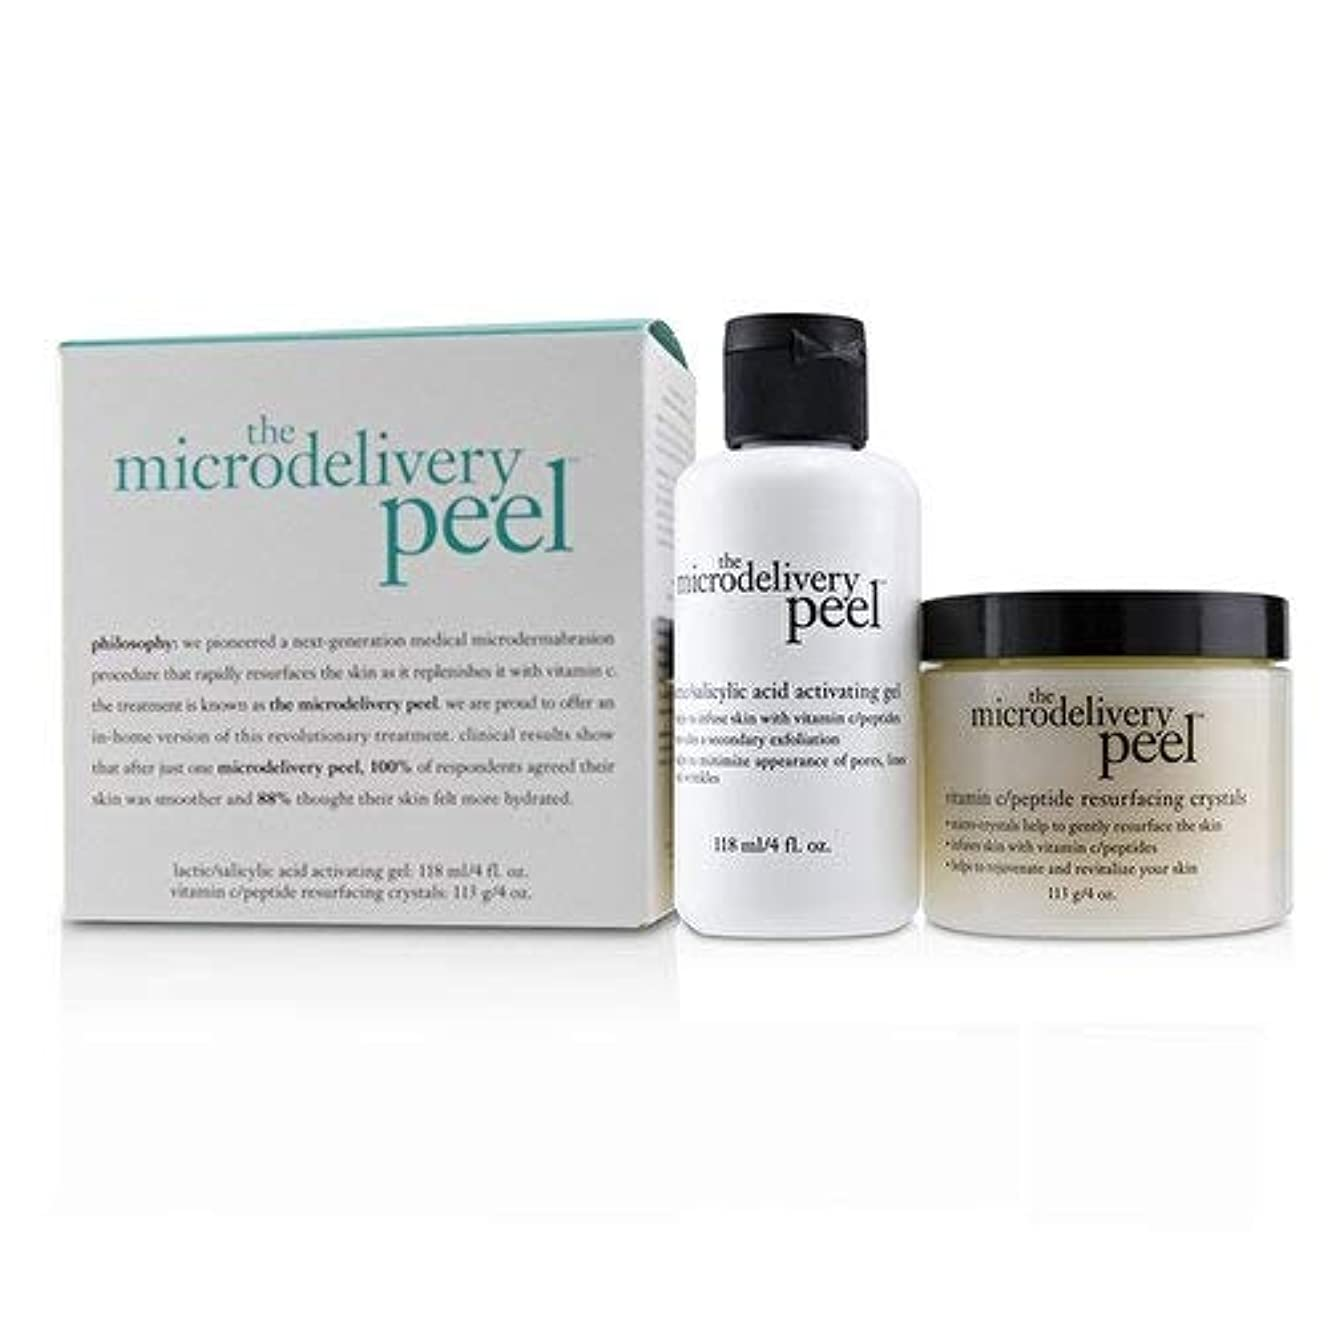 フィロソフィー The Microdelivery Peel: Lactic/Salicylic Acid Activating Gel 118ml + Vitamin C/Peptide Resurfacing Crystals...